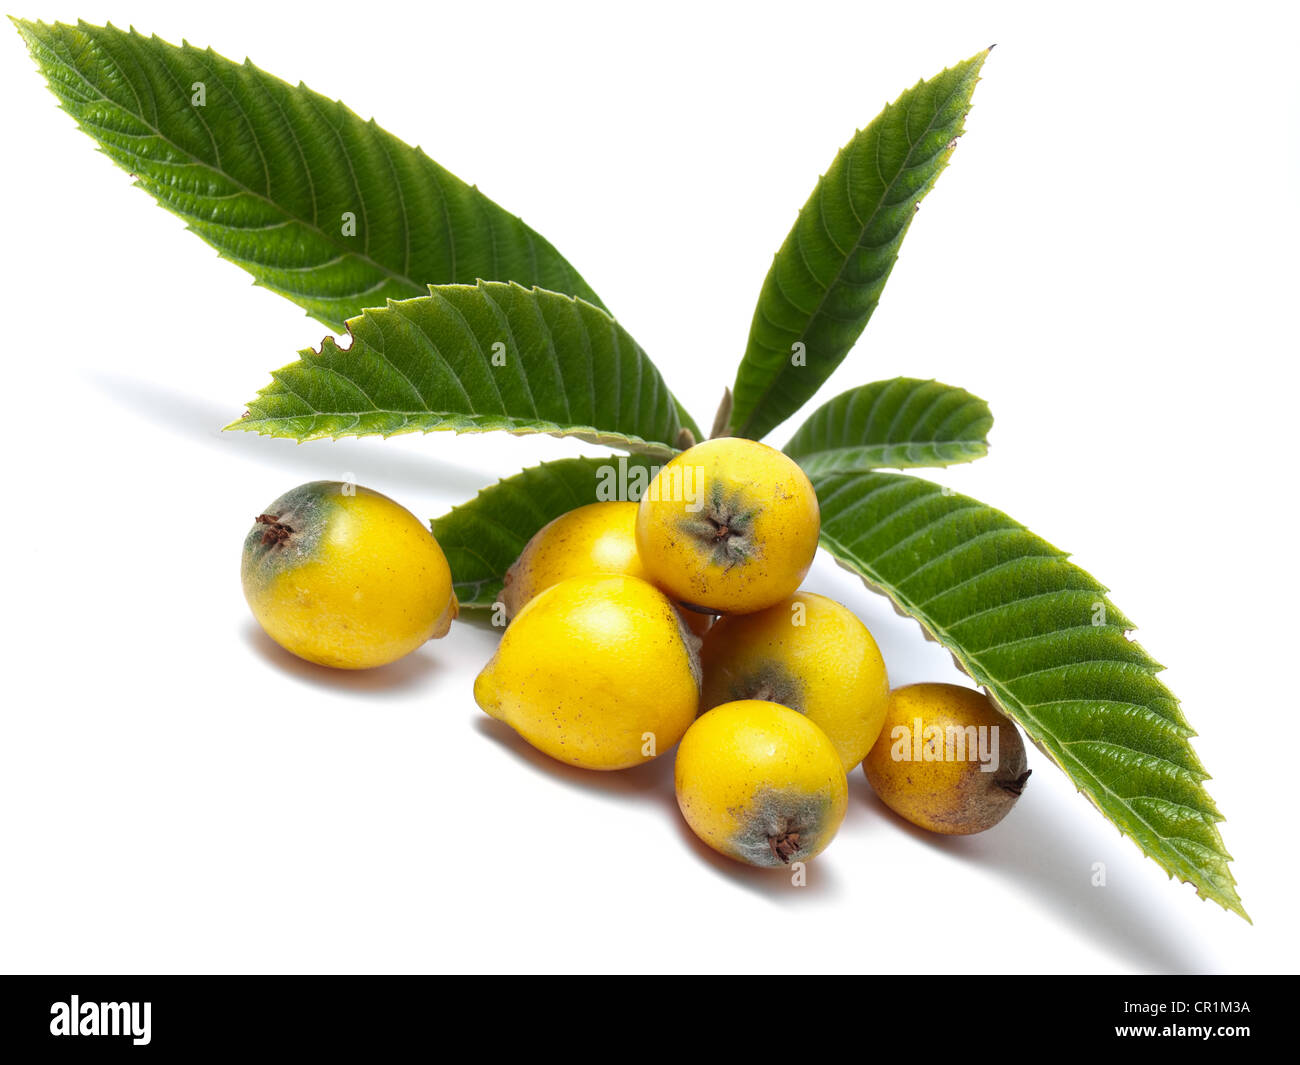 Loquat, Eriobotrya Japonica, is a fruit tree in the family Rosaceae, - Stock Image